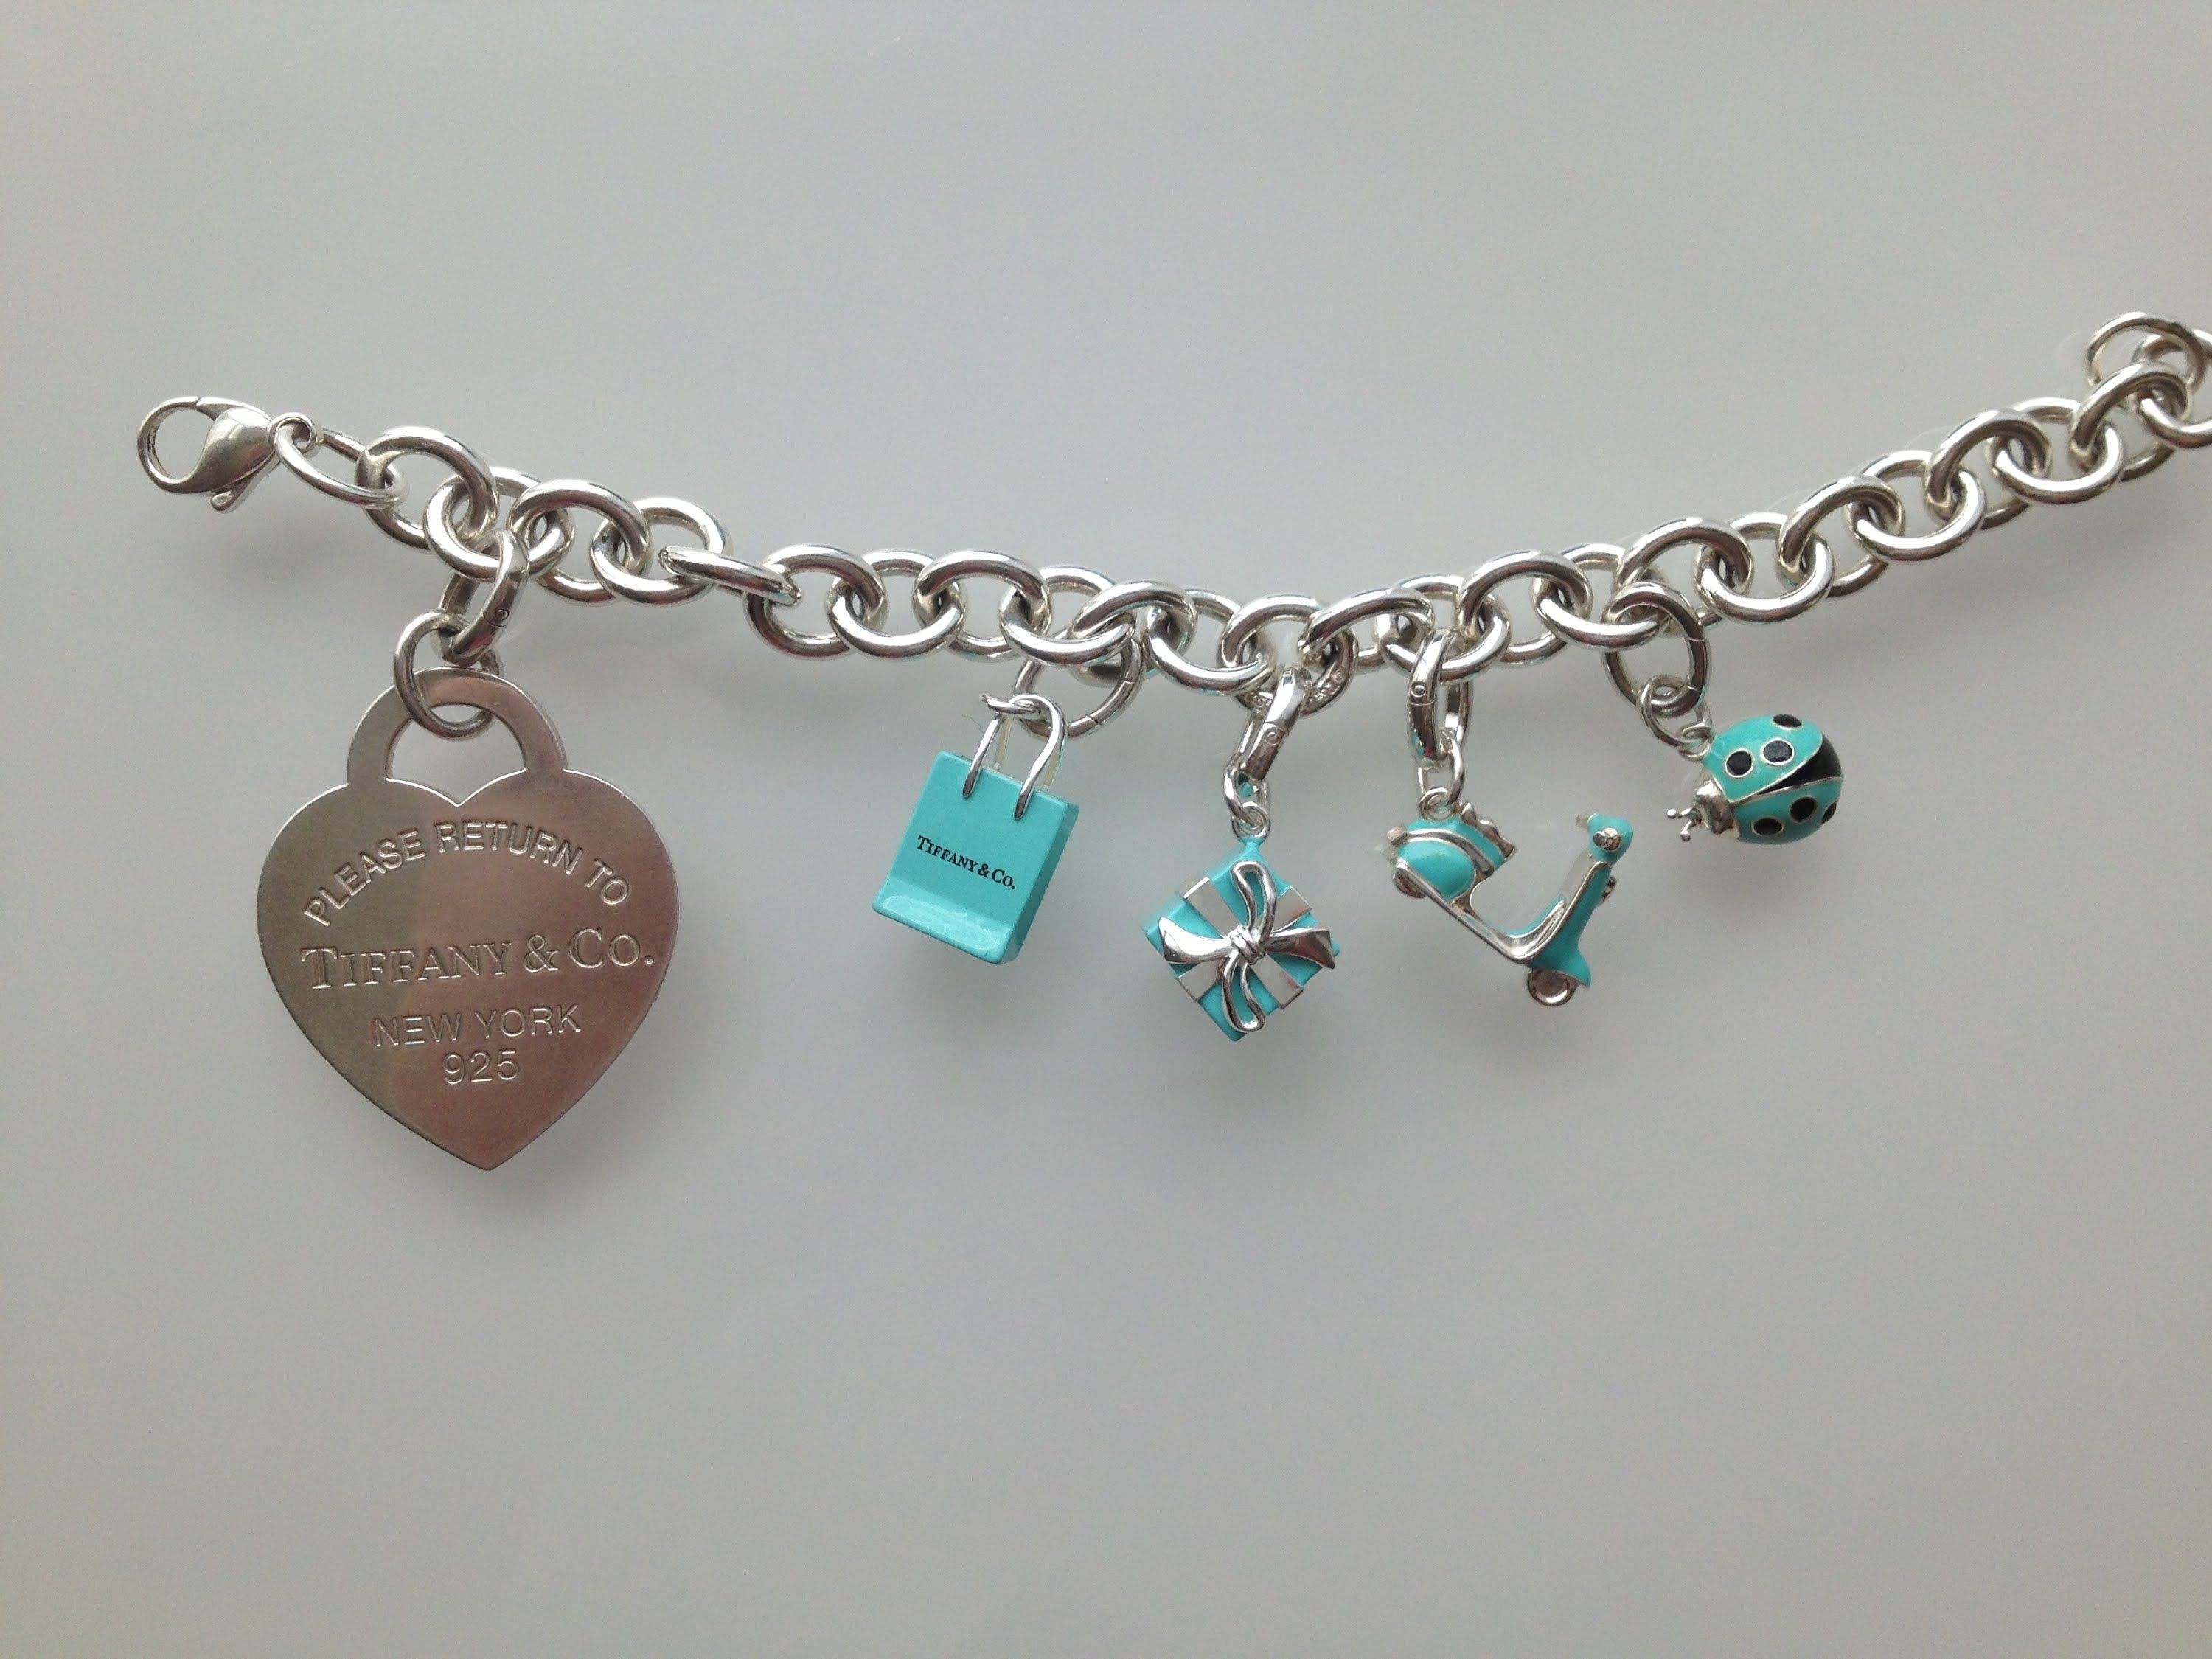 Tiffany And Co Bracelet With Charms  Tìm Với Google